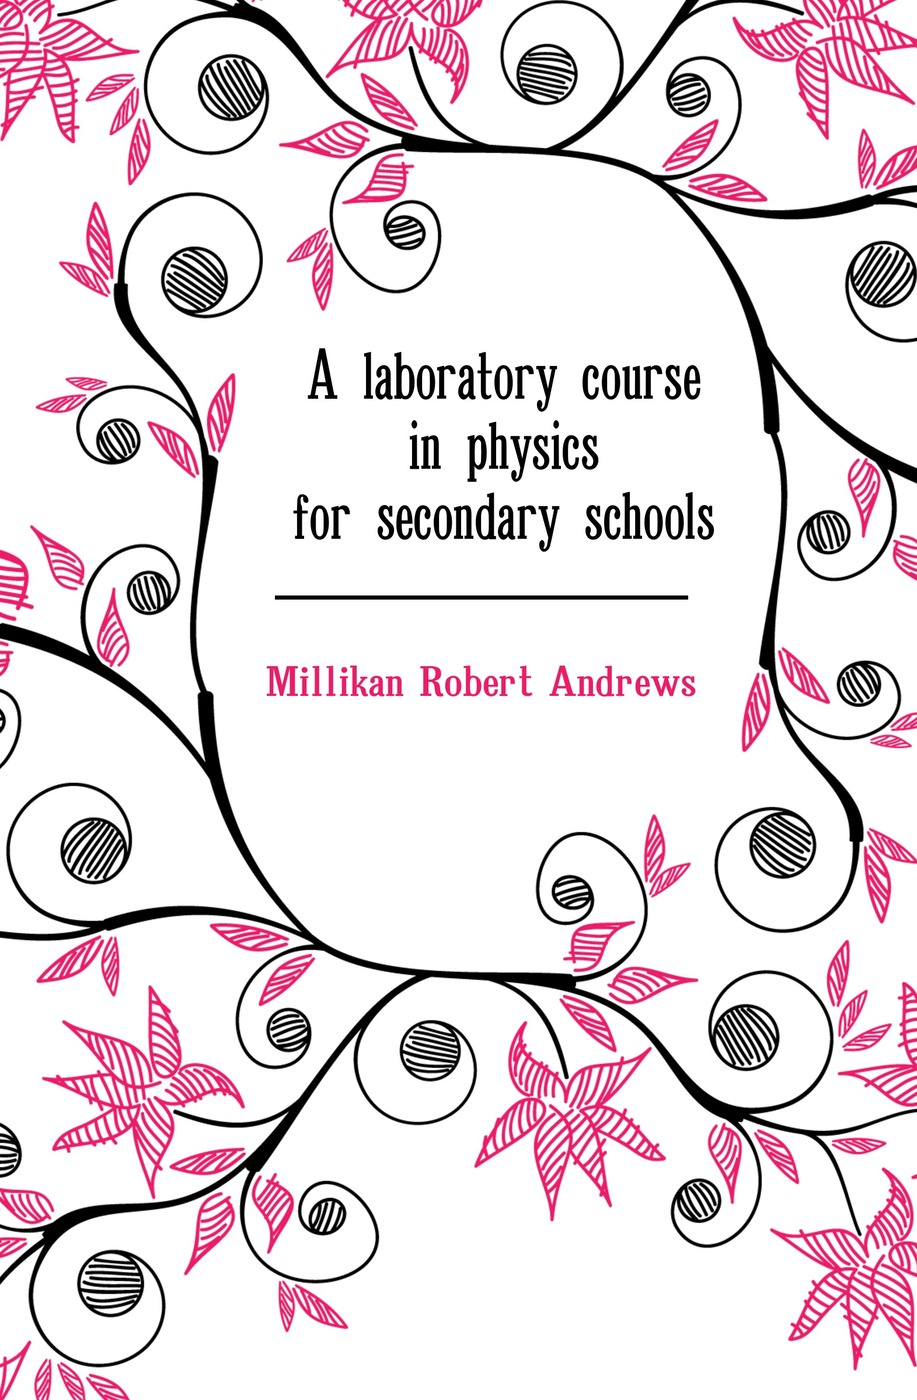 Millikan Robert Andrews A laboratory course in physics for secondary schools mumper william norris a text book in physics for secondary schools